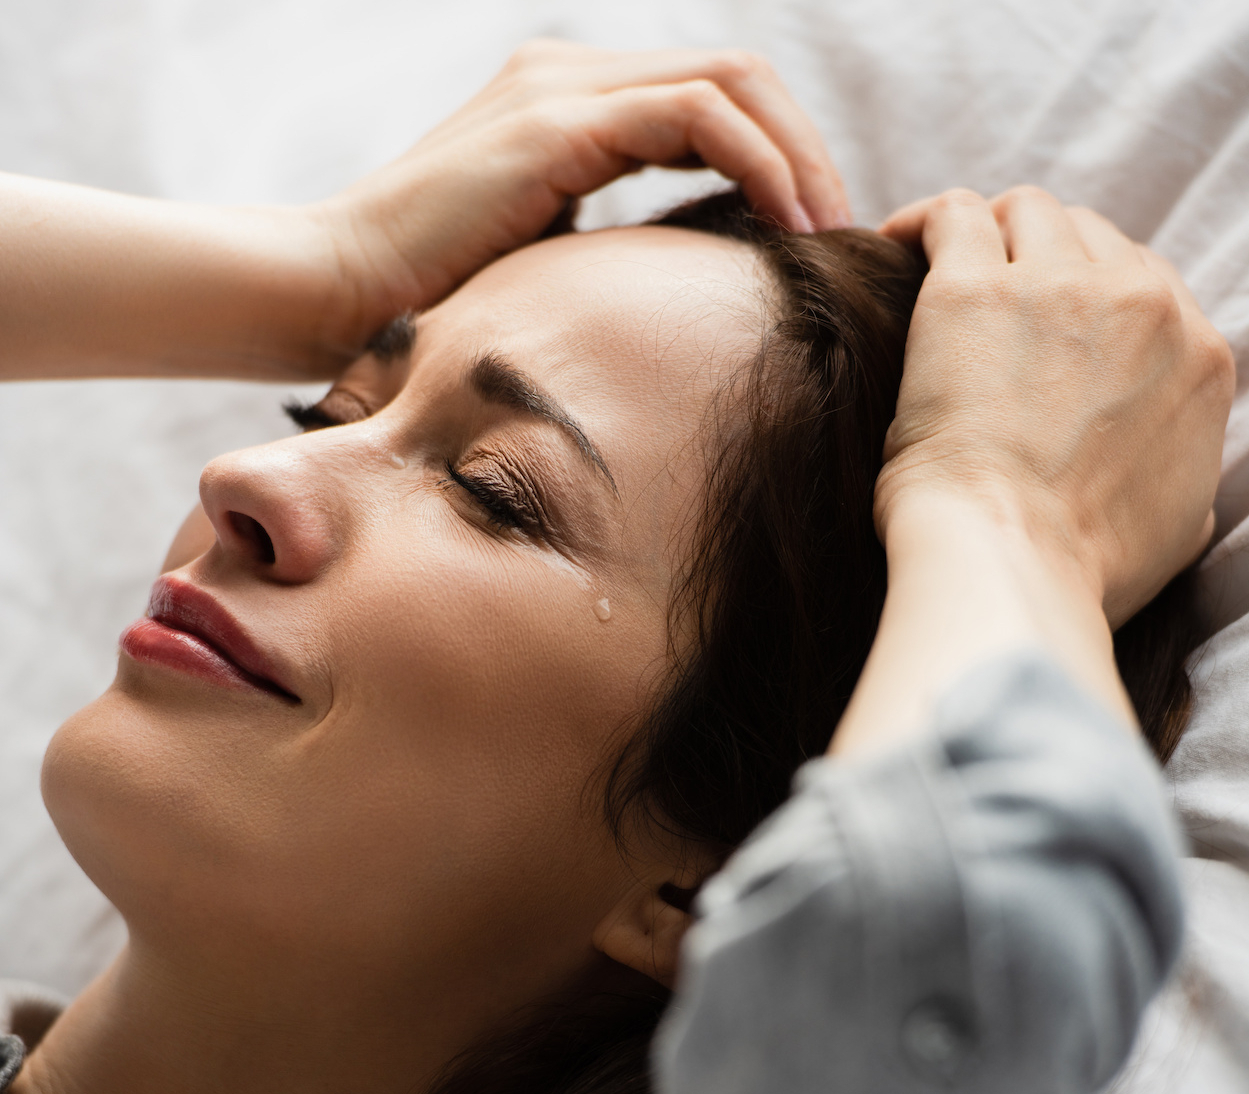 frustrated and brunette woman with closed eyes touching hair while crying on bed